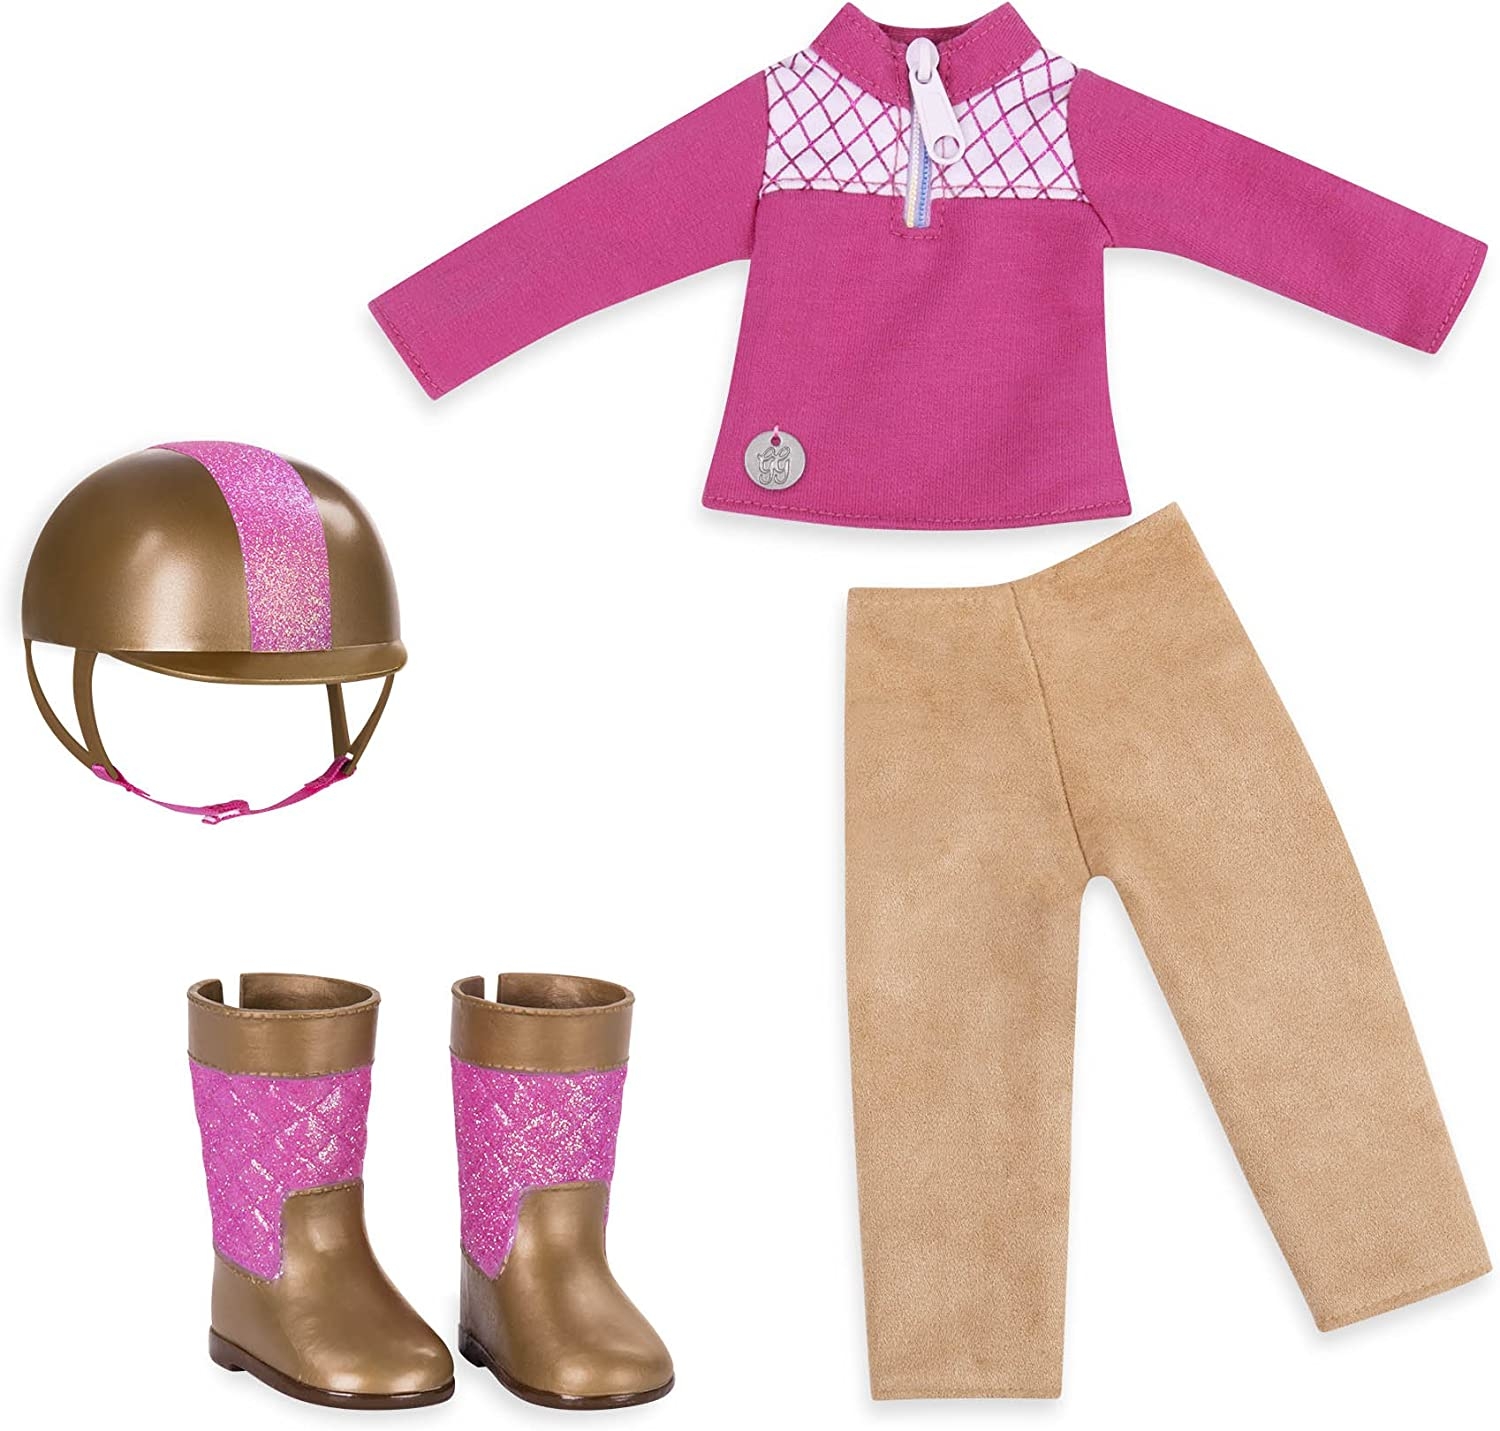 """Glitter Girls by Battat - Ride & Shine Deluxe Equestrian Outfit - 14"""" Doll Clothes & Accessories For Girls Age 3 & Up - Childrens Toys"""